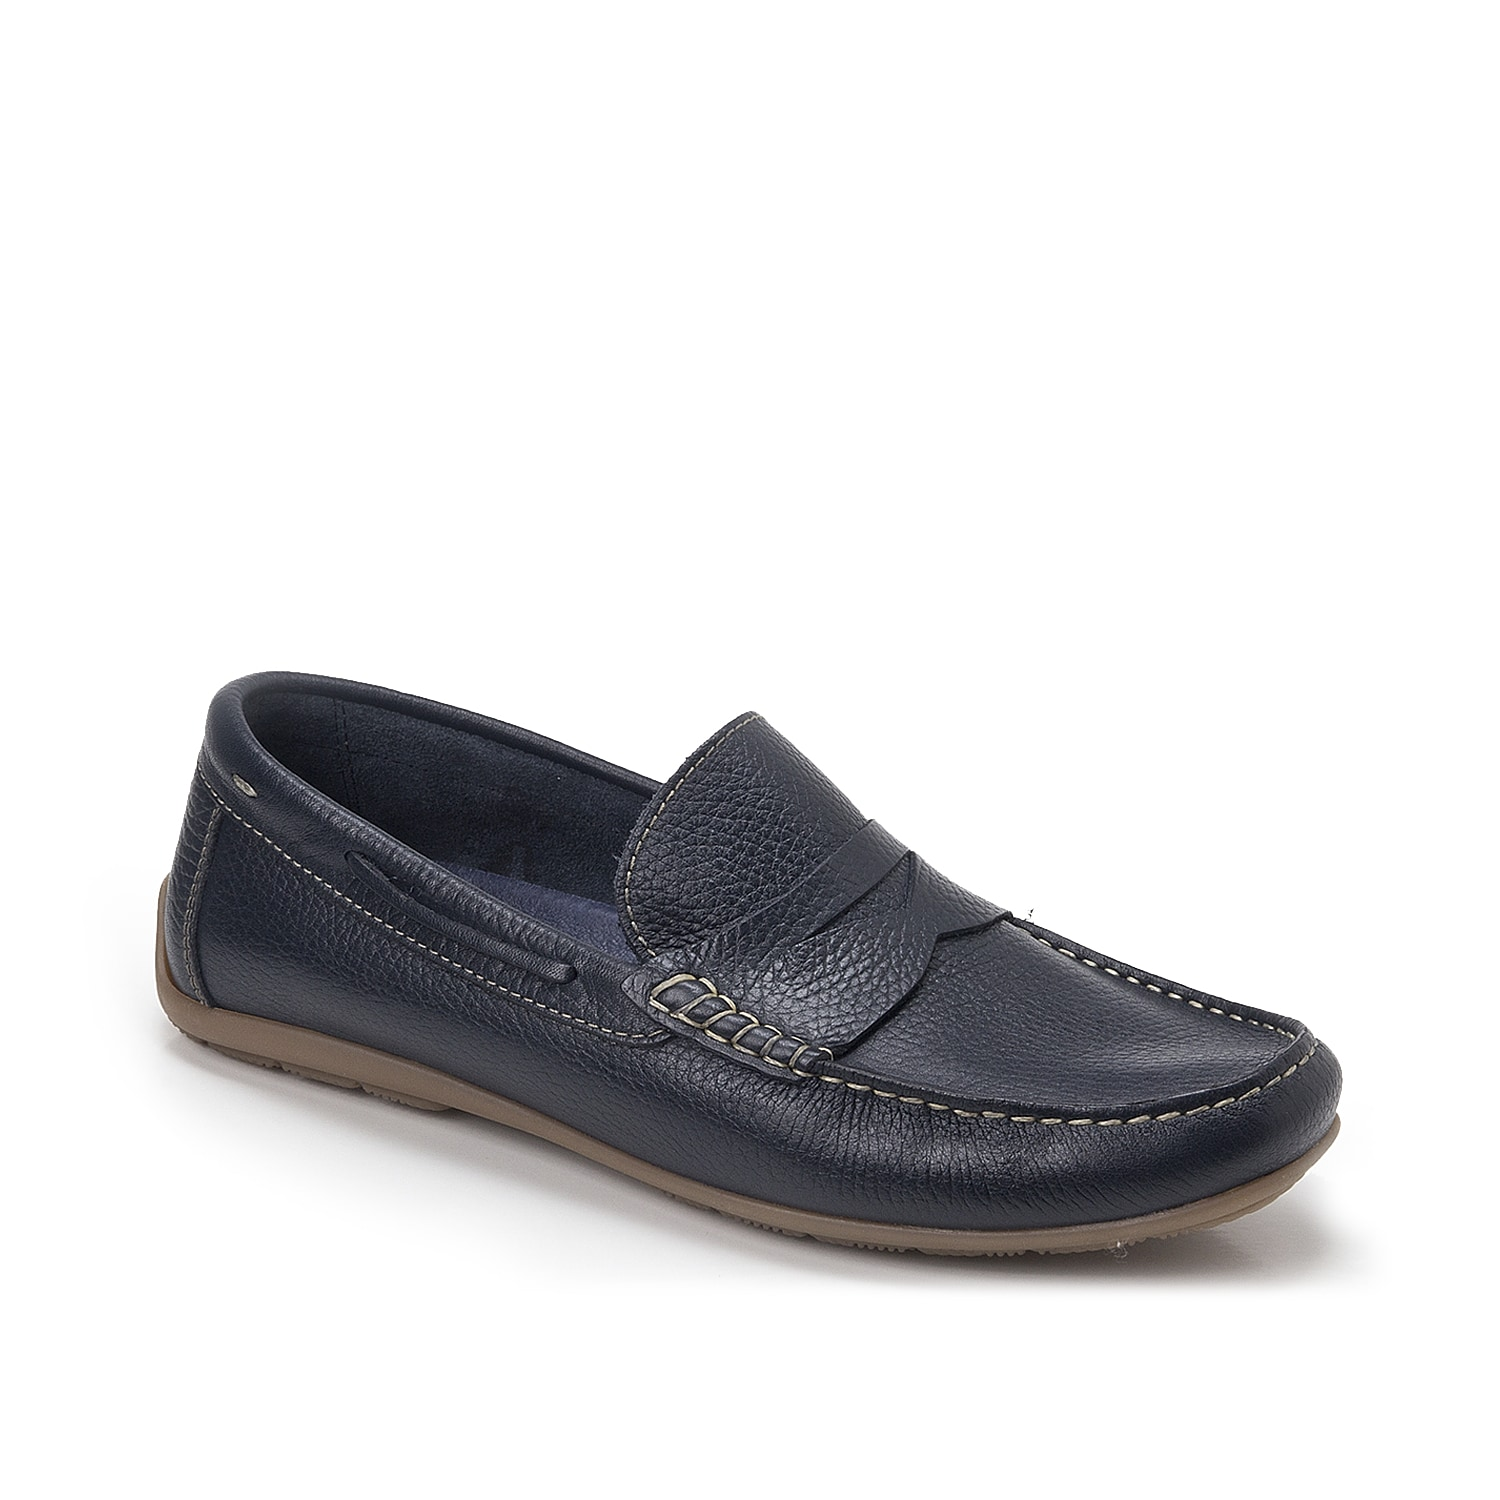 The Viseu penny loafer from Sandro Moscoloni is perfect for cruising around town. This driving moccasin featuring a pebbled leather finish and stitched accents for casual flair.